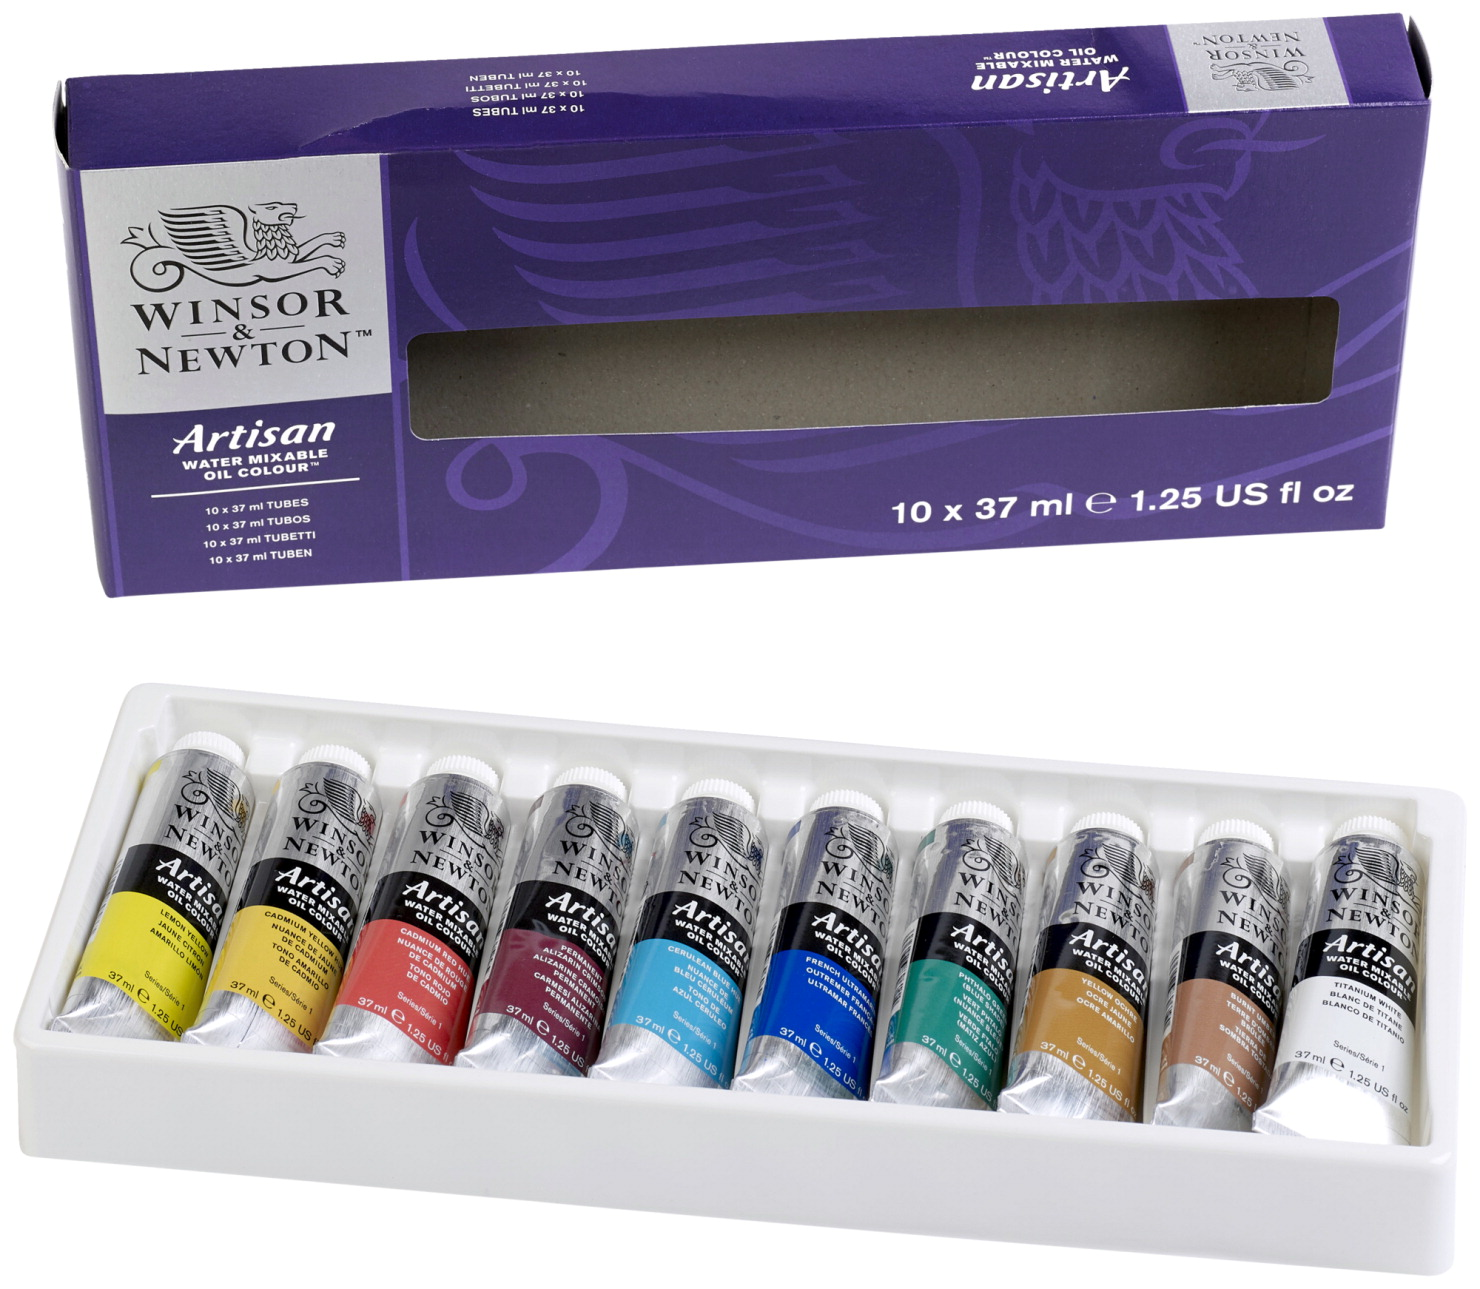 Winsor & Newton Artisan Water-Mixable Oil Color Set, Assorted Colors, Set of 10